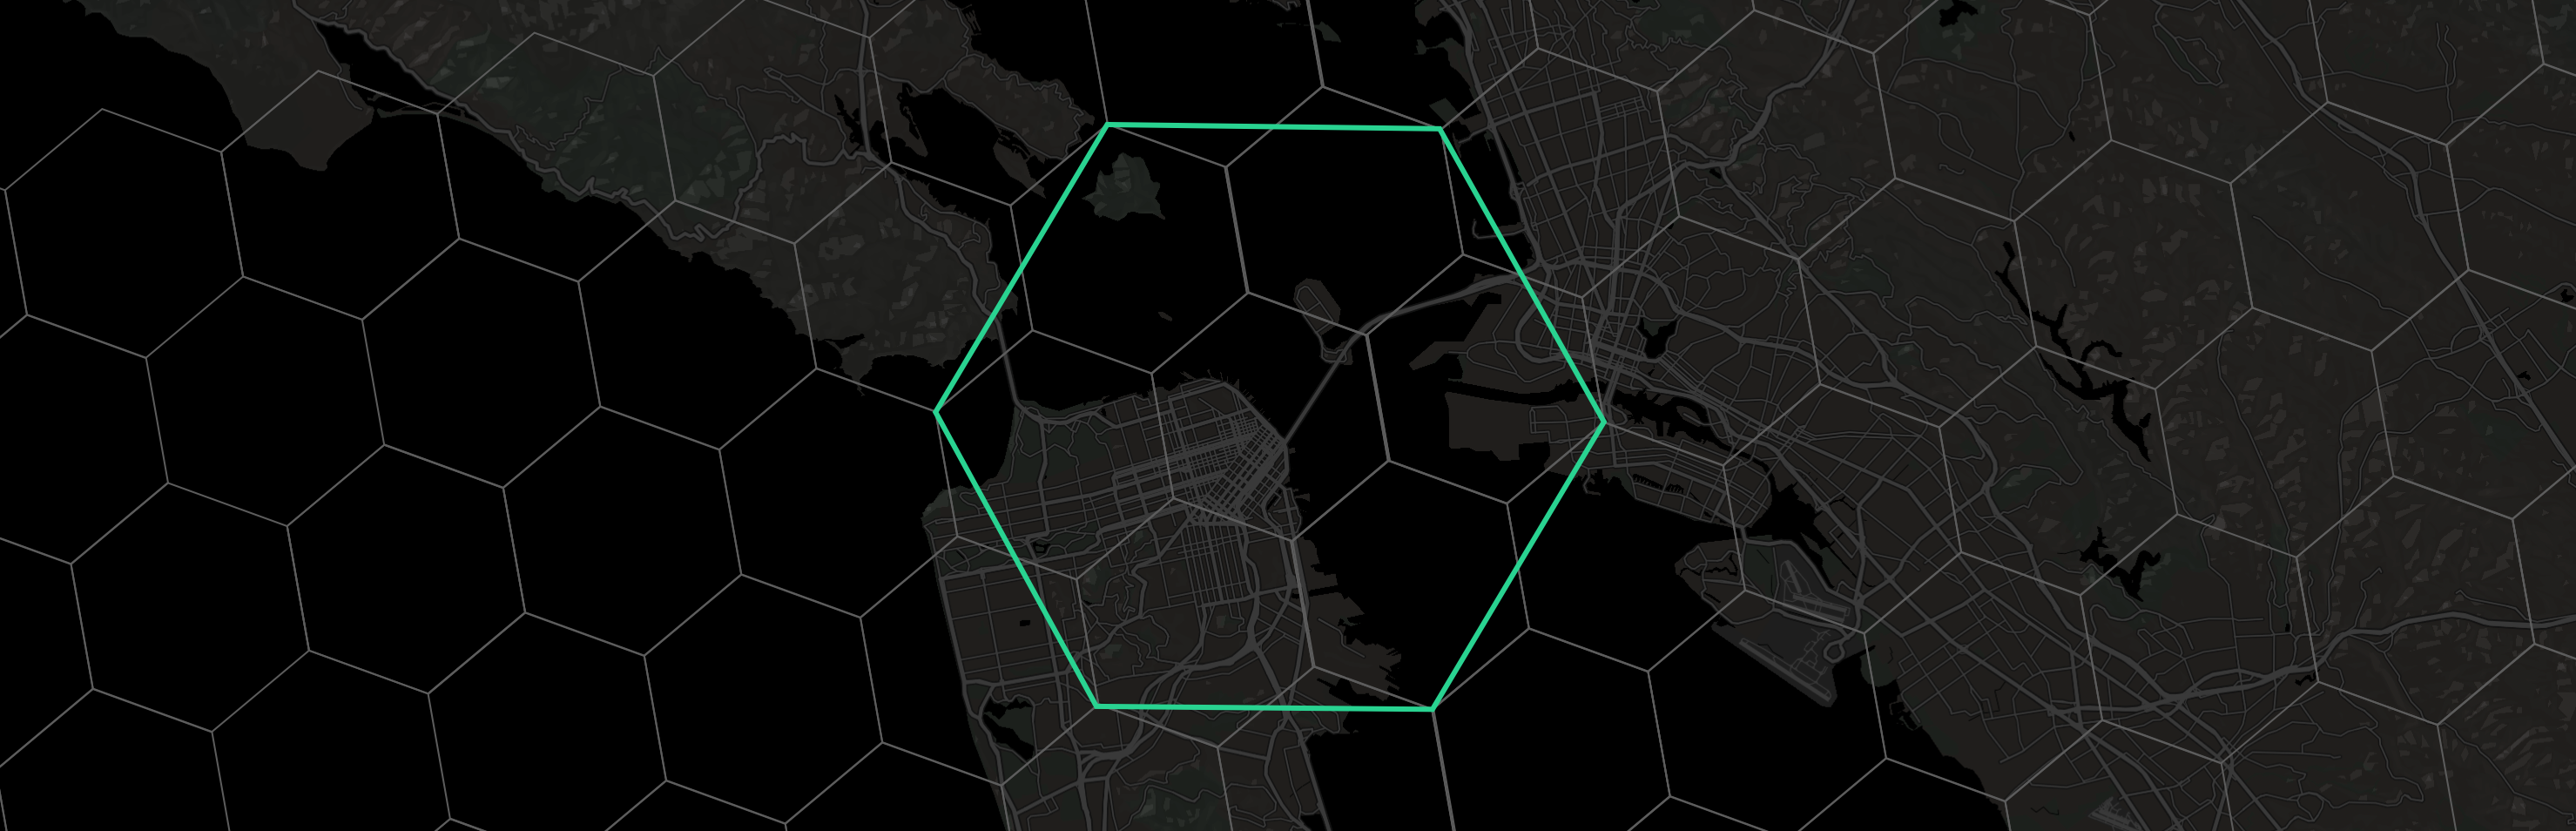 Mapping the World with Hexagons - The Helium Blog